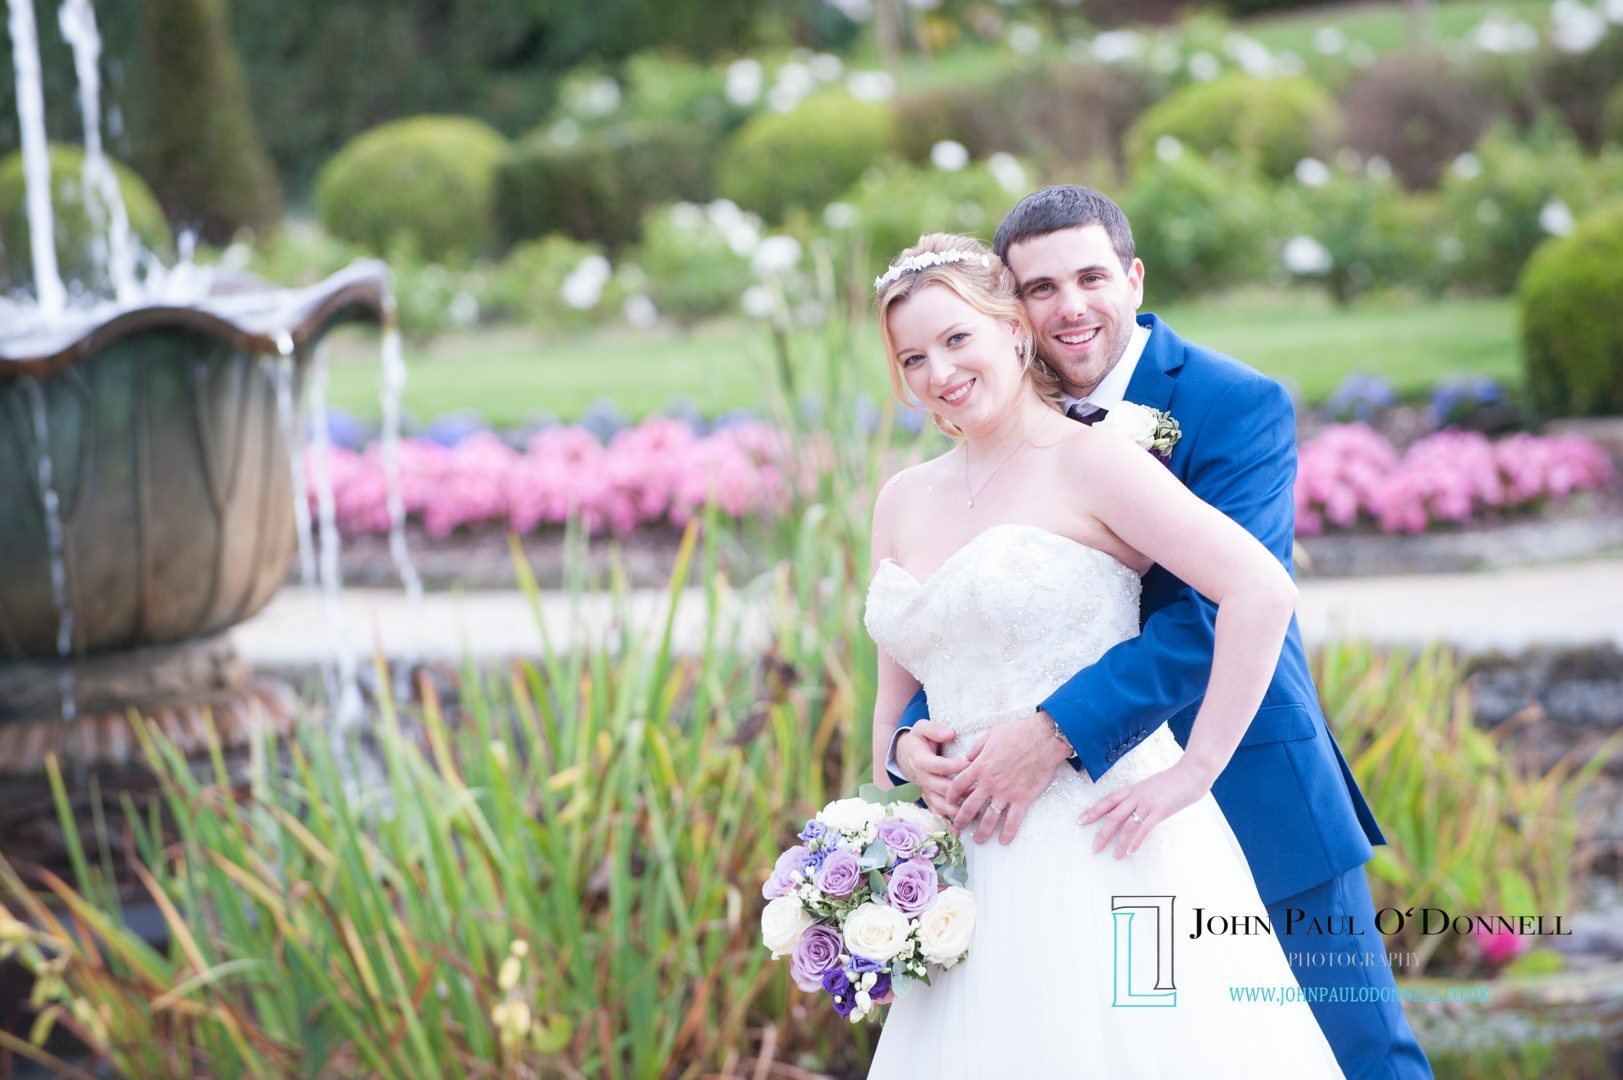 Fanhams Hall Wedding Venue Review - Fanhams Hall Wedding Photographer